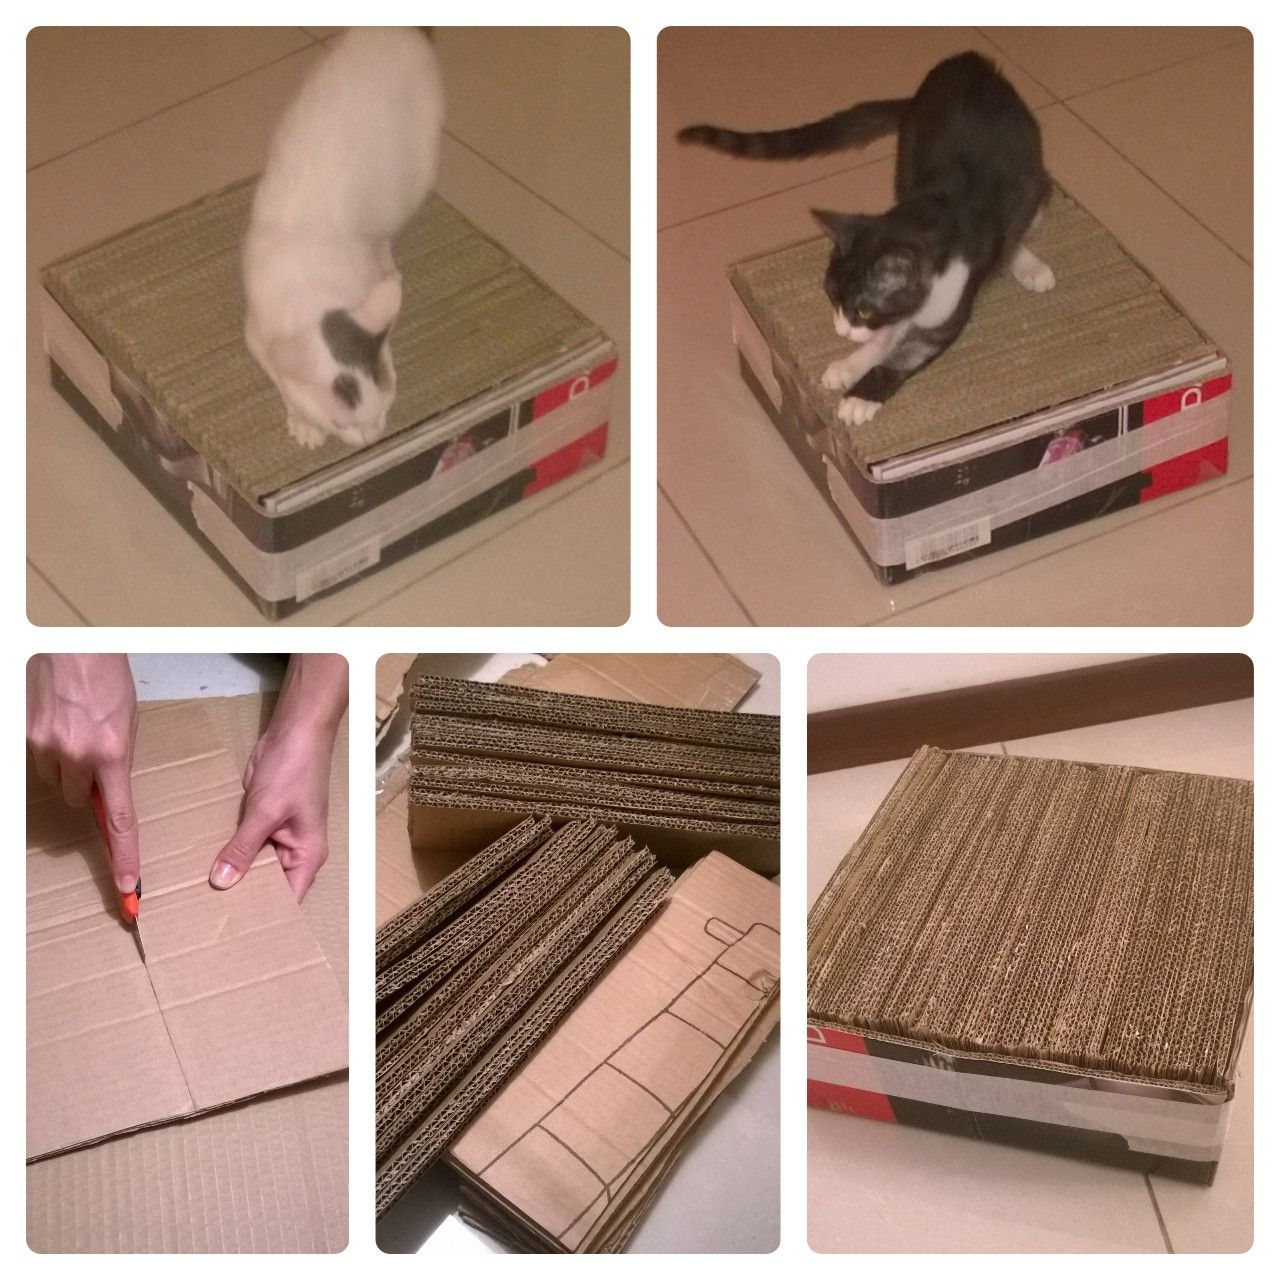 the most awesome images on the internet cardboard cat scratcher cat scratcher and diy cardboard. Black Bedroom Furniture Sets. Home Design Ideas